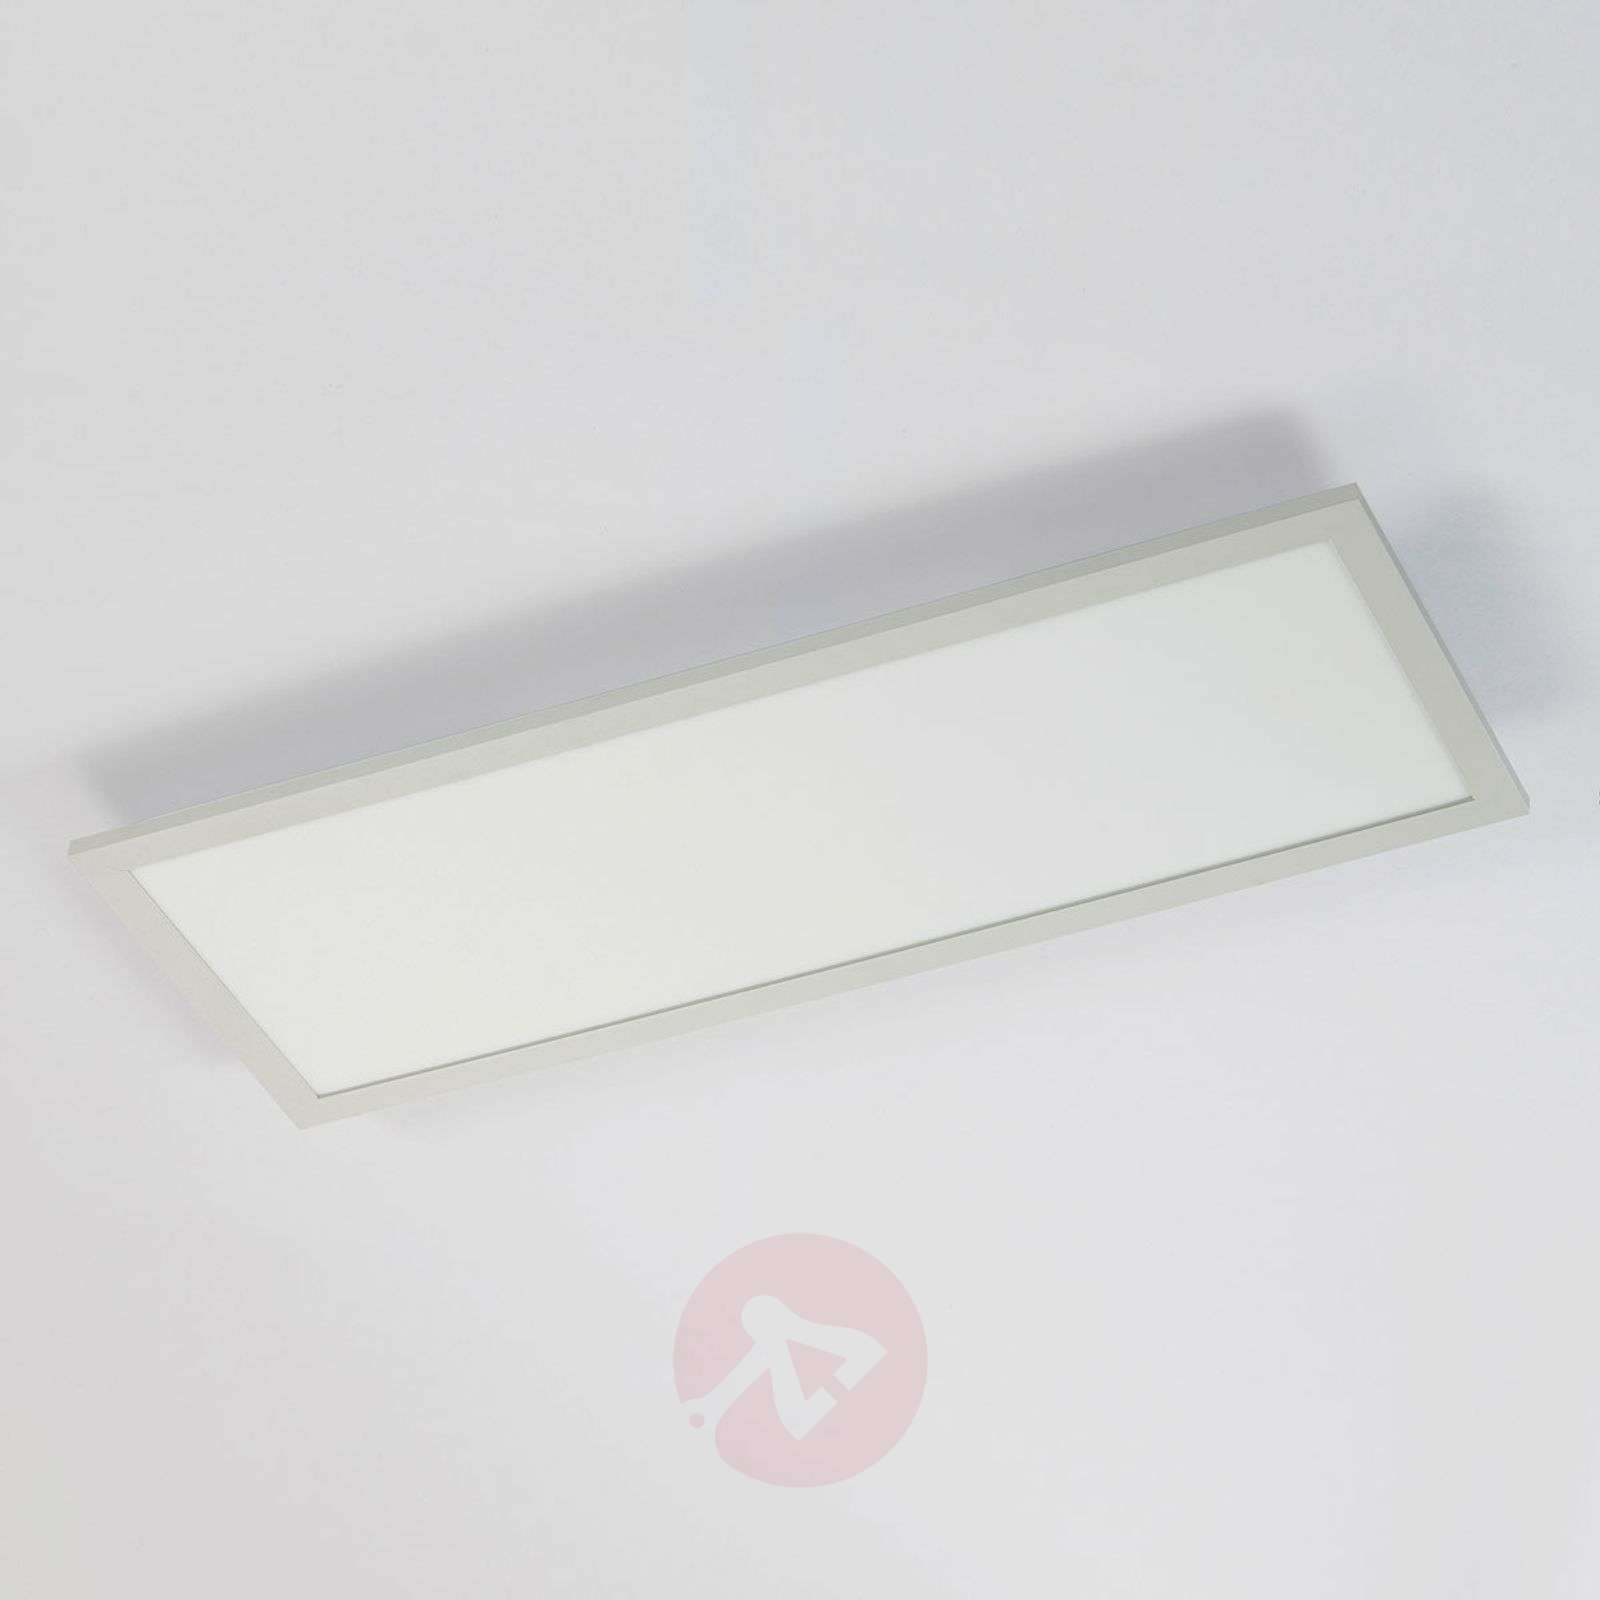 Panel LED Enja alargado, 30 x 80 cm-9621531-02